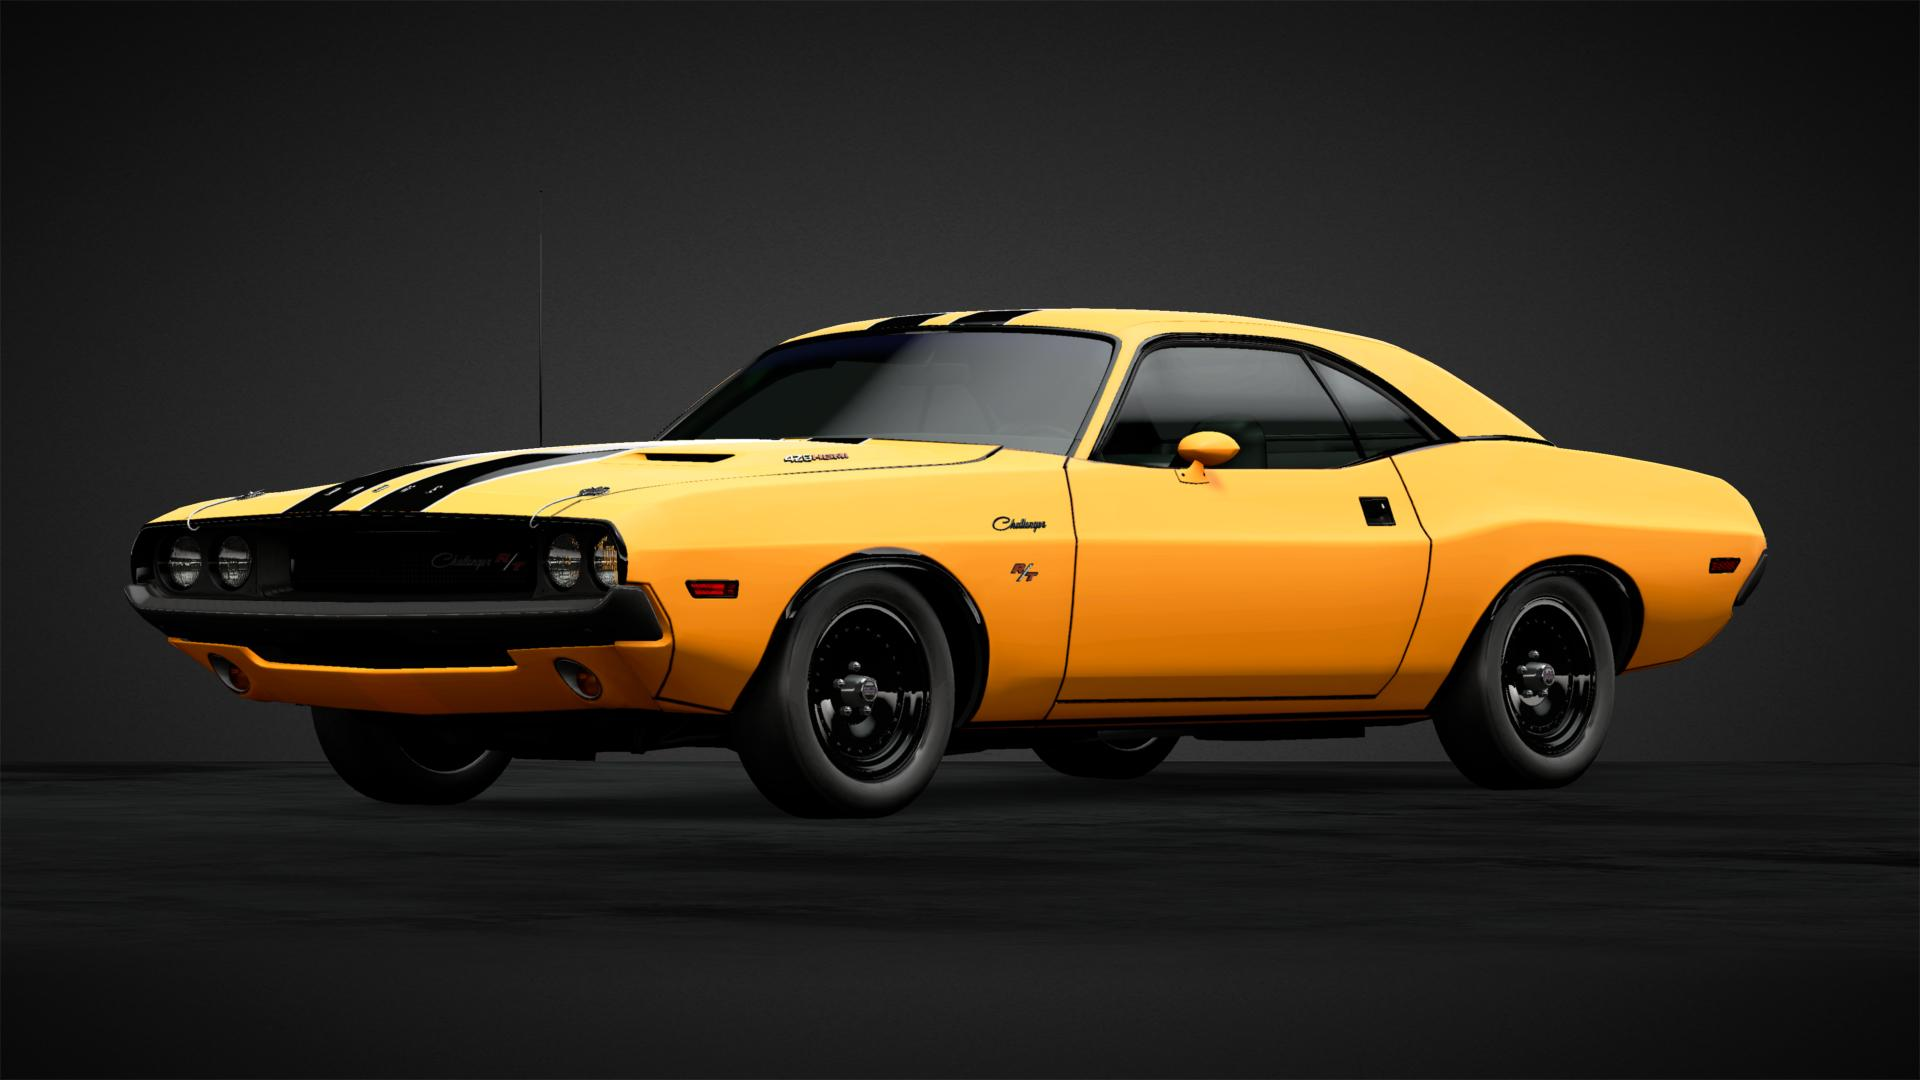 Driver: San Francisco Challenger - Car Livery by atheistsw